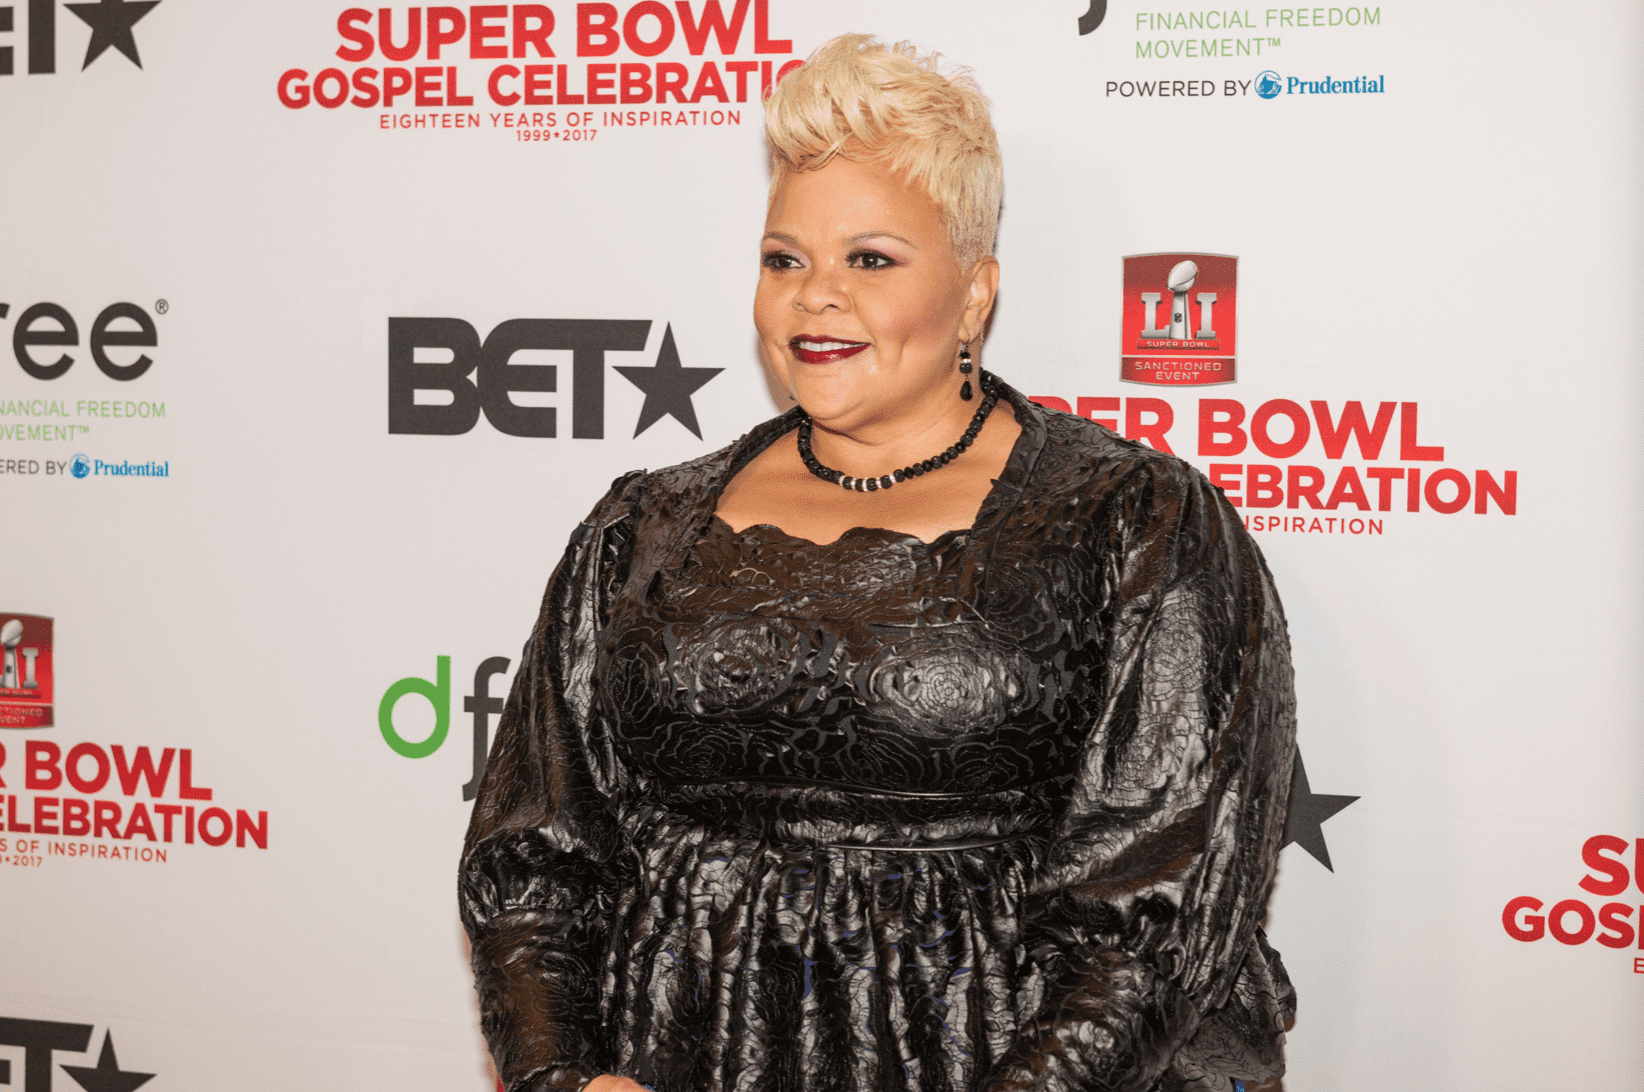 Tamela Mann attends BET's Super Bowl Gospel Celebration at Lakewood Church on February 3, 2017.   Source: Getty Images